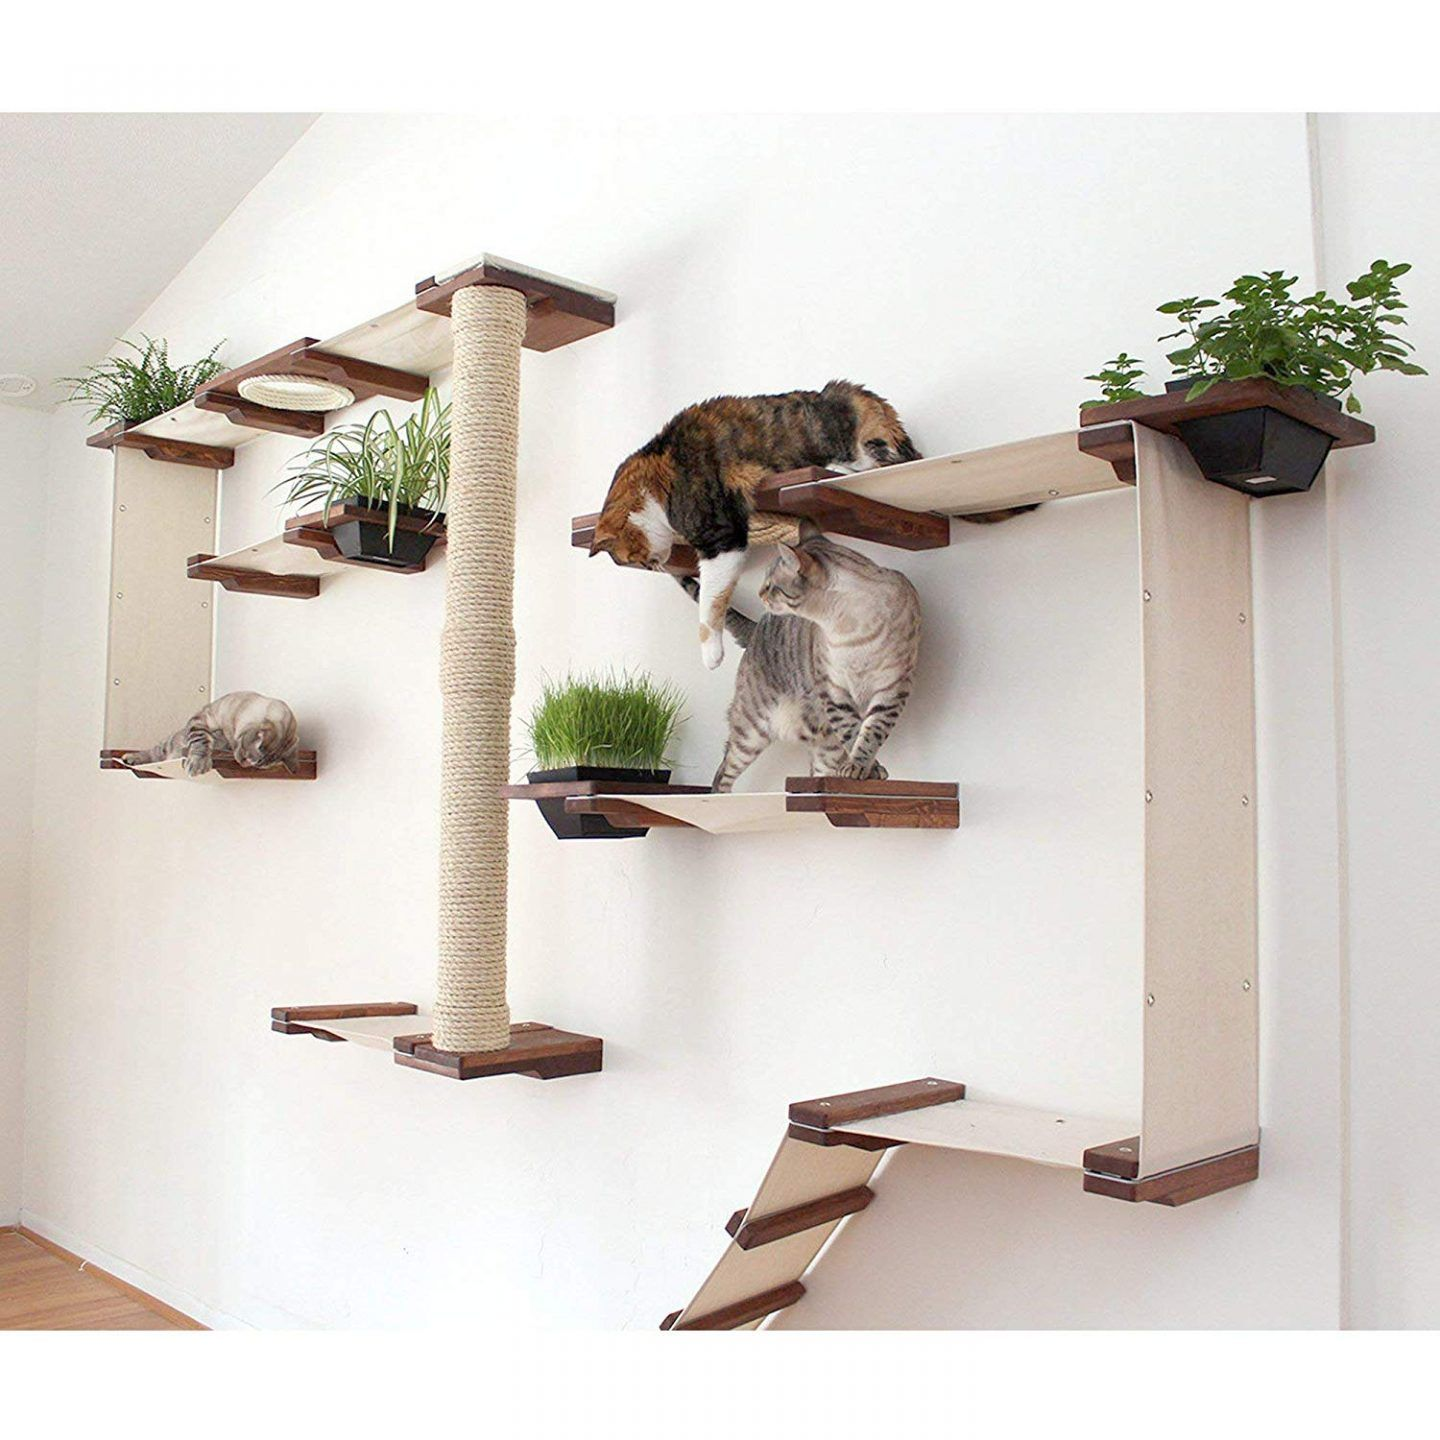 The Best Cat Wall Shelves Of 2020 And Why You Need Them